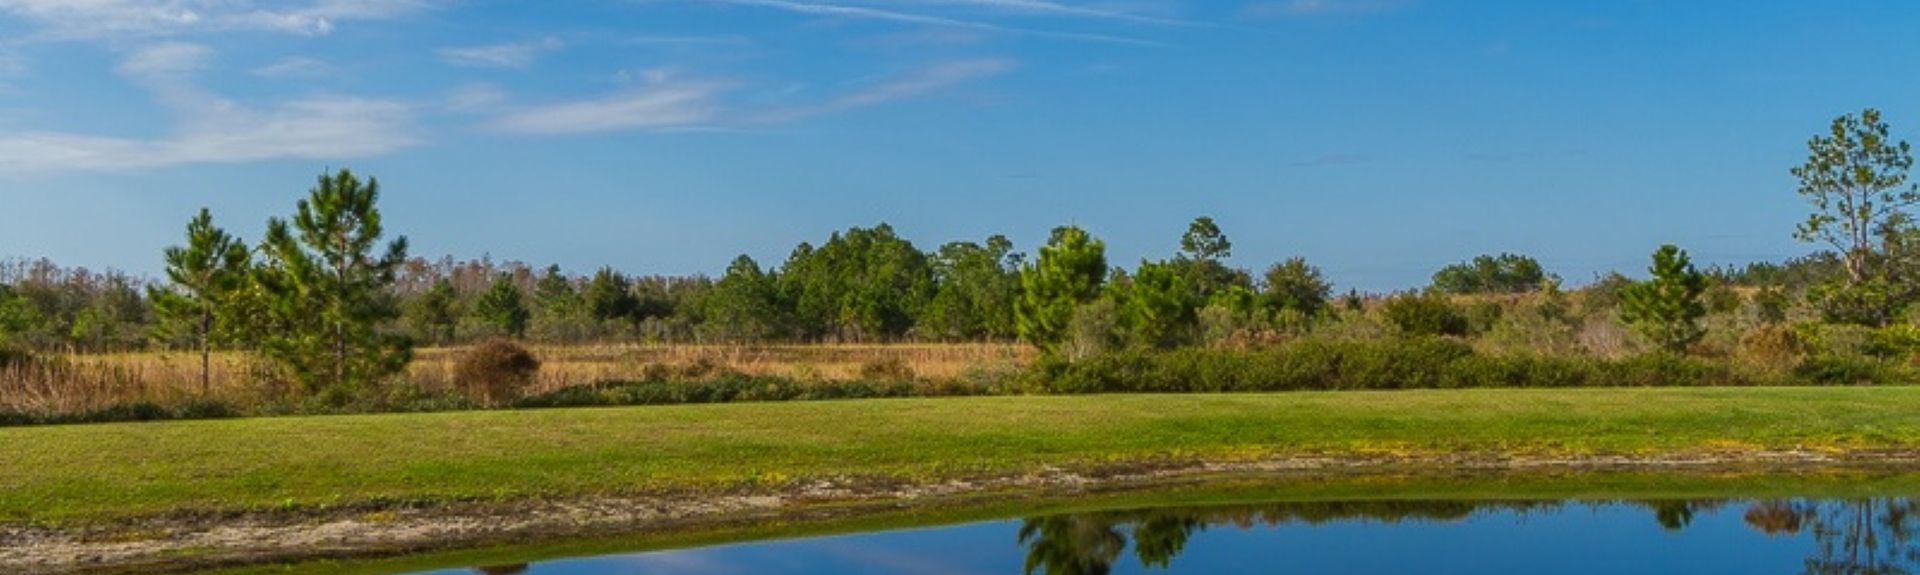 High Grove, Clermont, Florida, United States of America